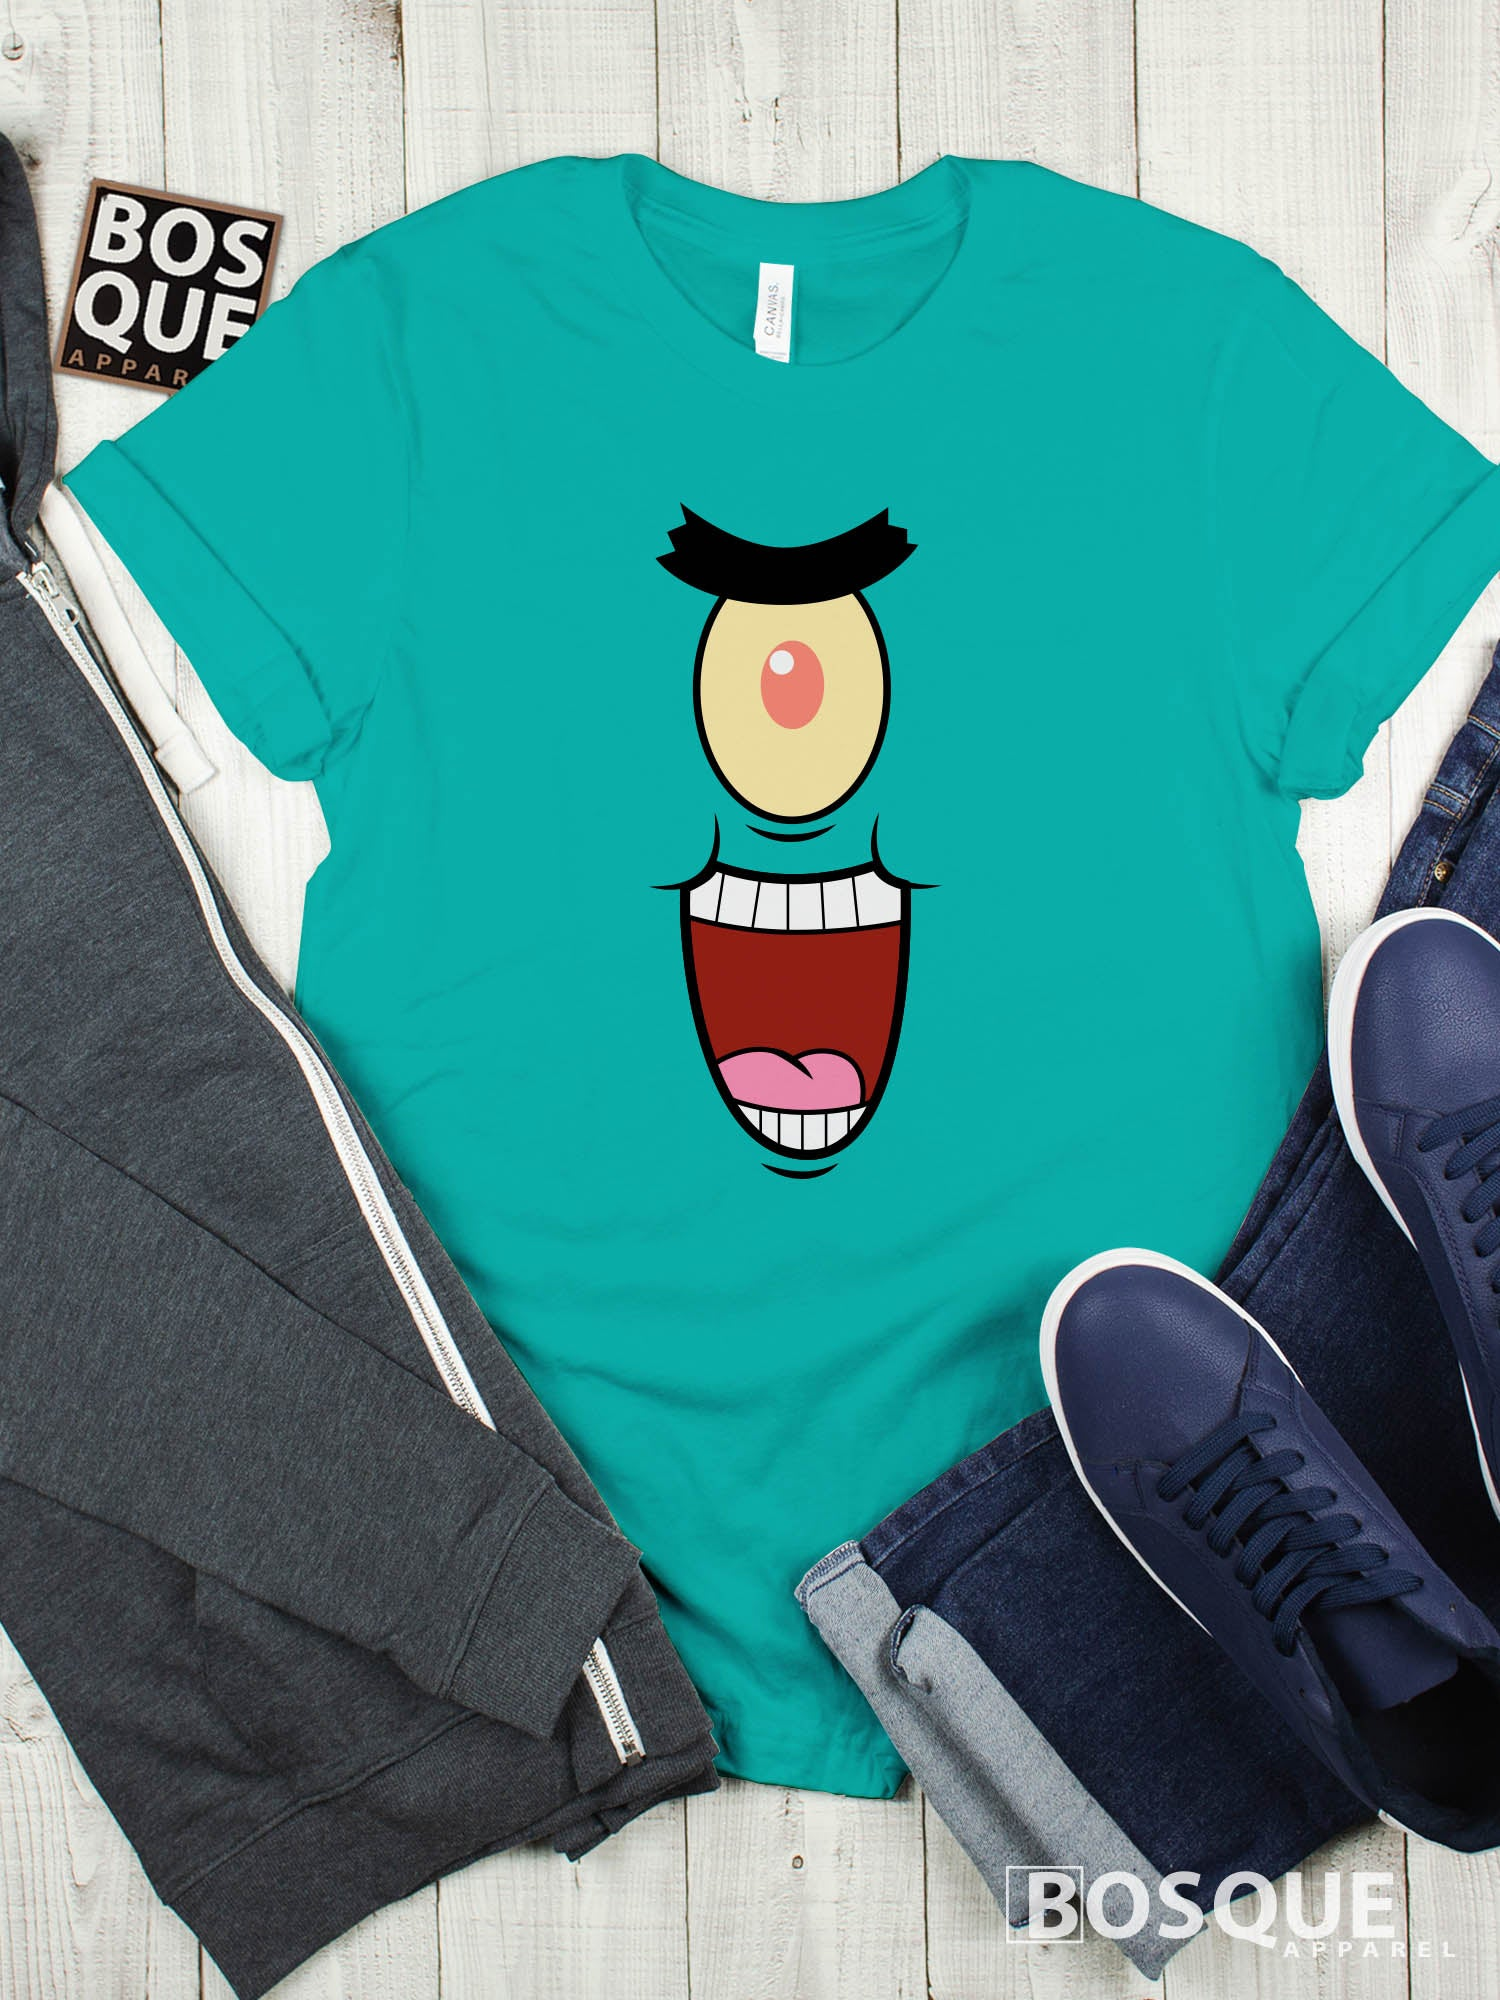 Spongebob & Friends Plankton Face Premium Tee | Long Tee Shirt | Hoodie | Sweatshirt | Tank-Top …